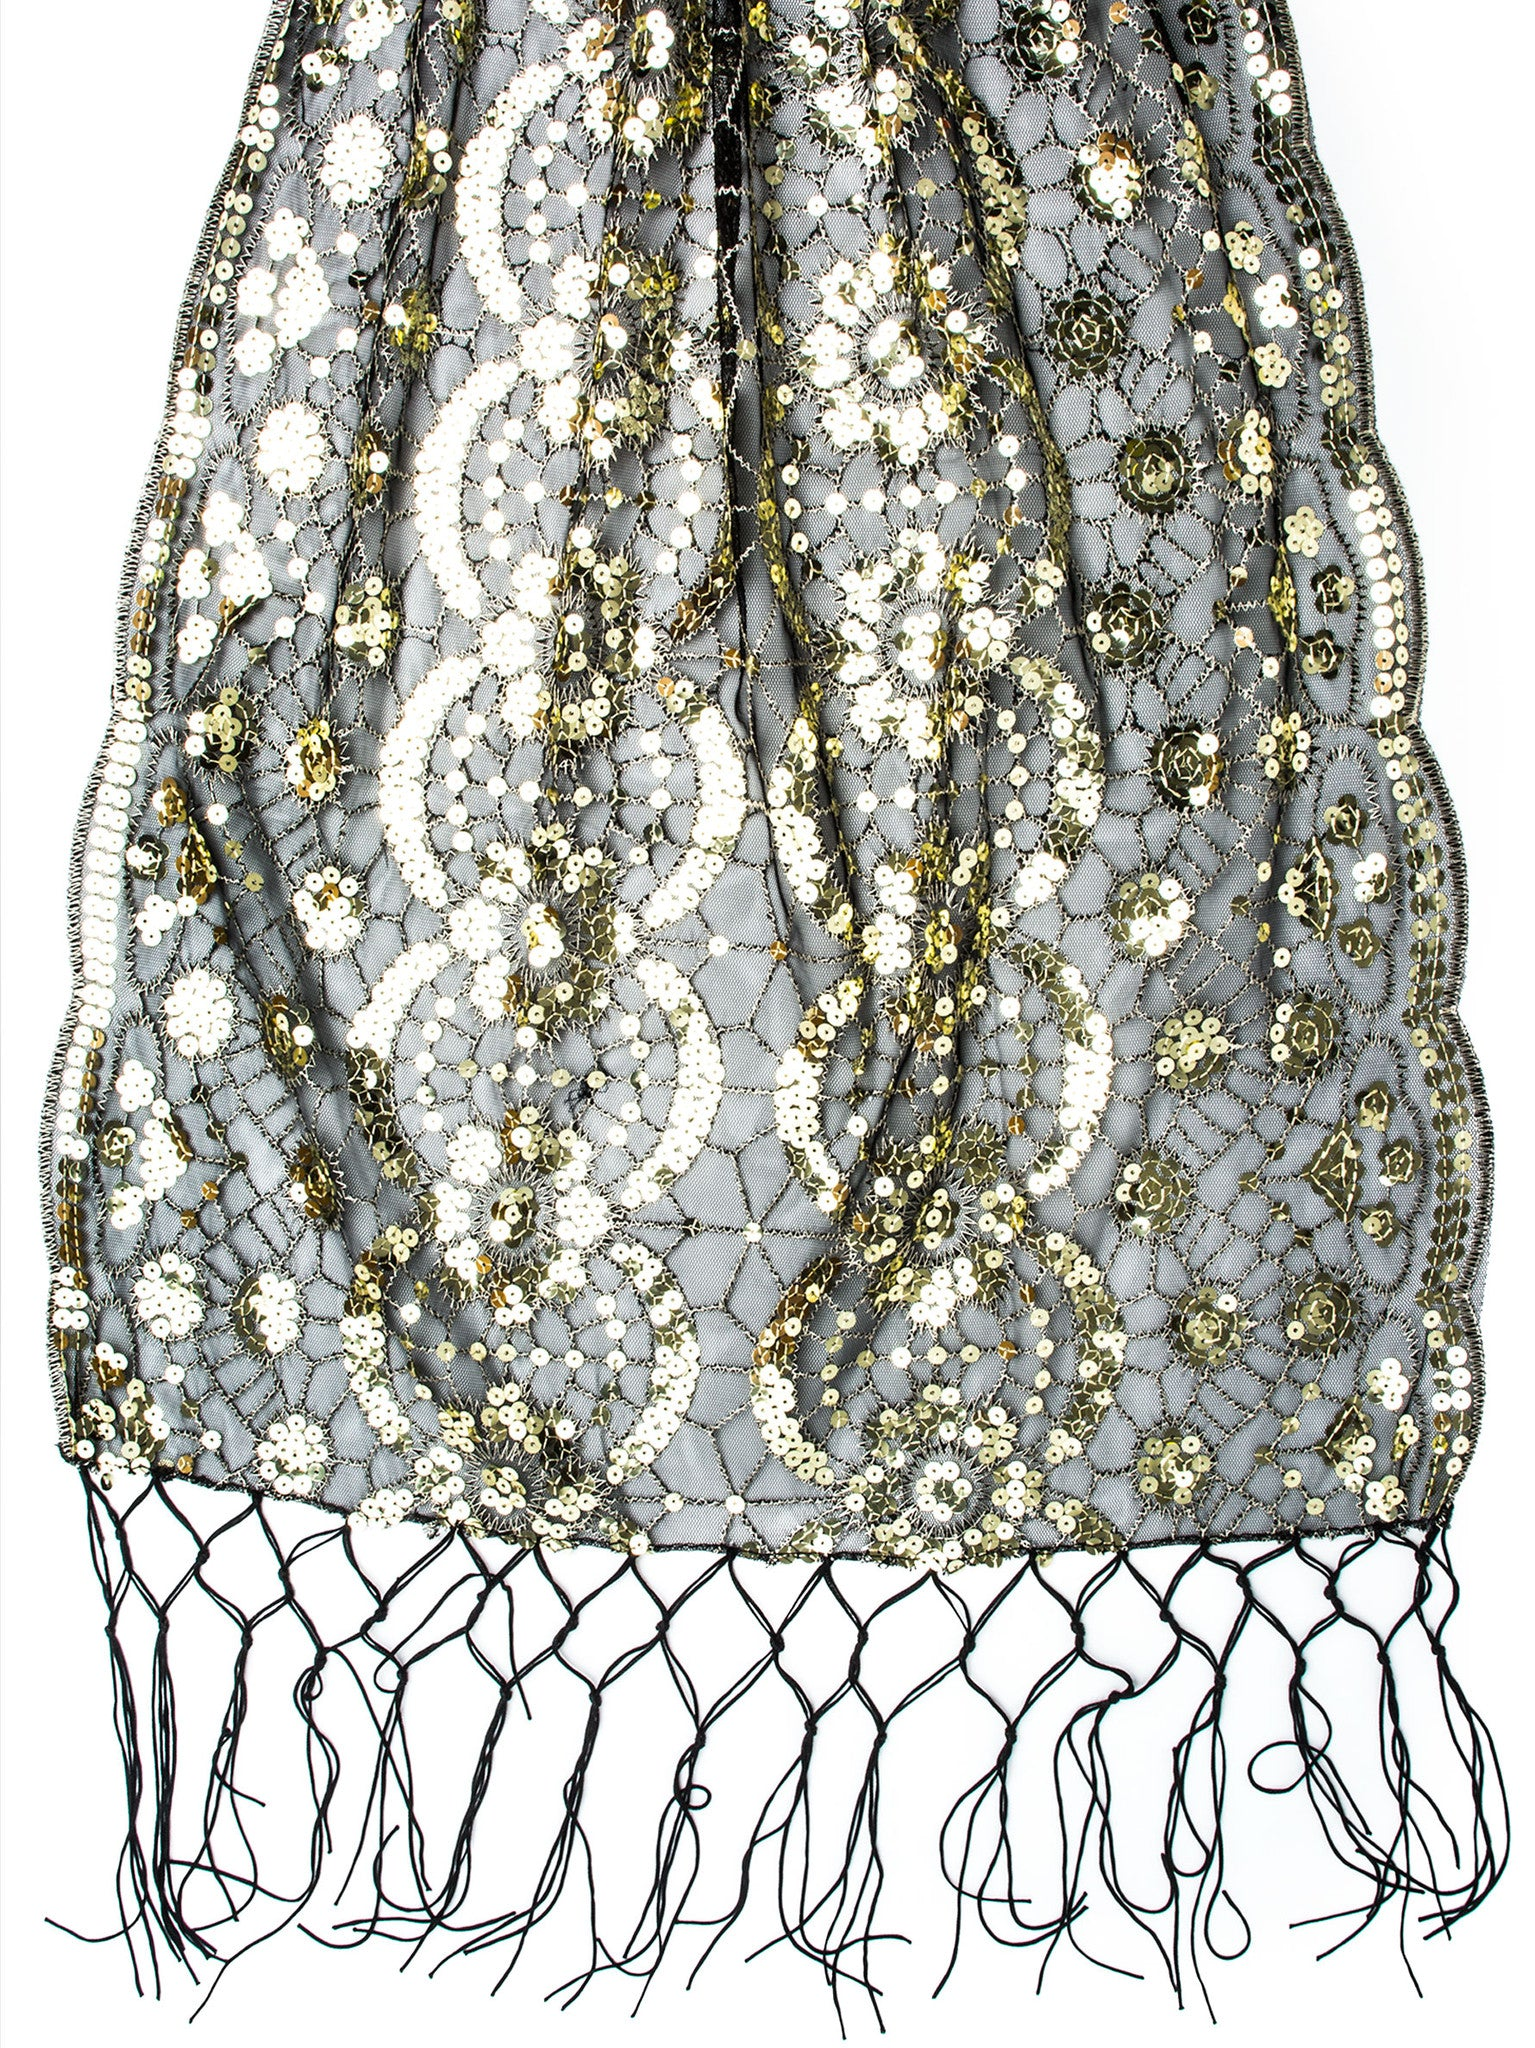 Scarves - Vera, Vintage Inspired Sequin Shawl, Evening Wrap, Embroidered Sequin Fringe Shawl or Scarf -() Bohomonde  - 8